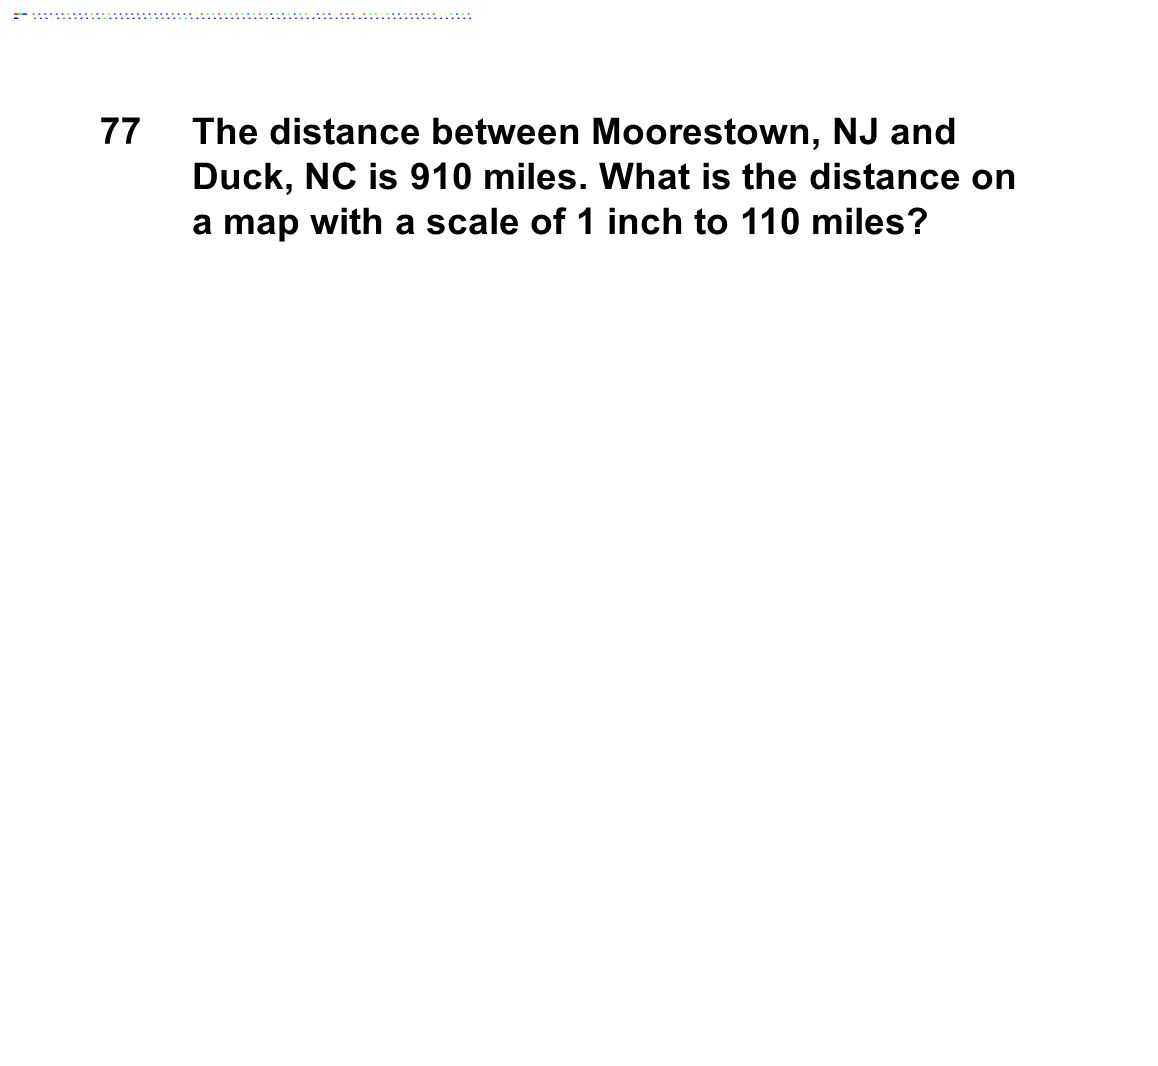 77 The distance between Moorestown, NJ and Duck, NC is 910 miles. What is the distance on a map with a scale of 1 inch to 110 miles